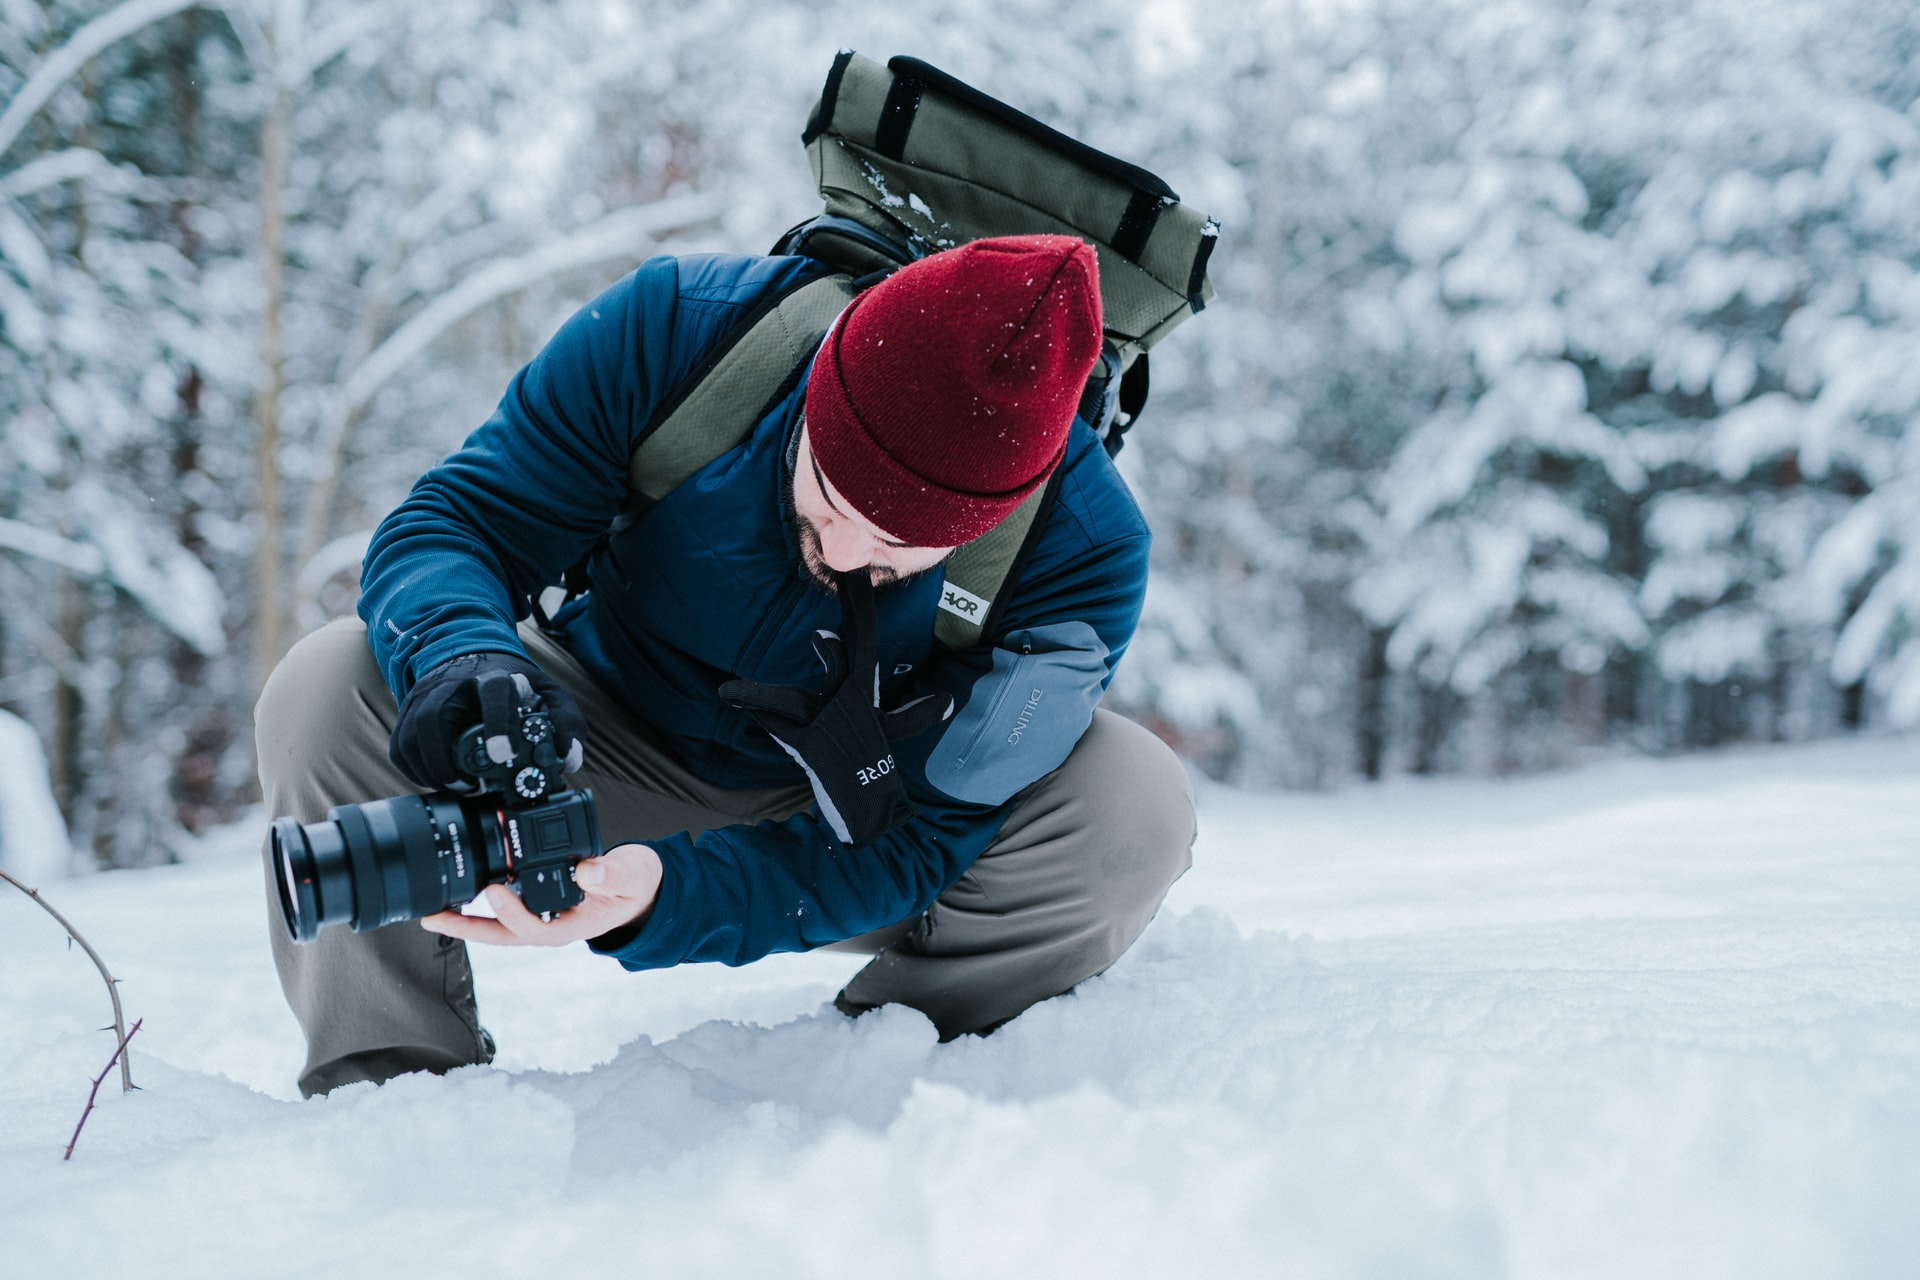 photographer crouched down in the snow taking a pro photo, instagram photography camera advice